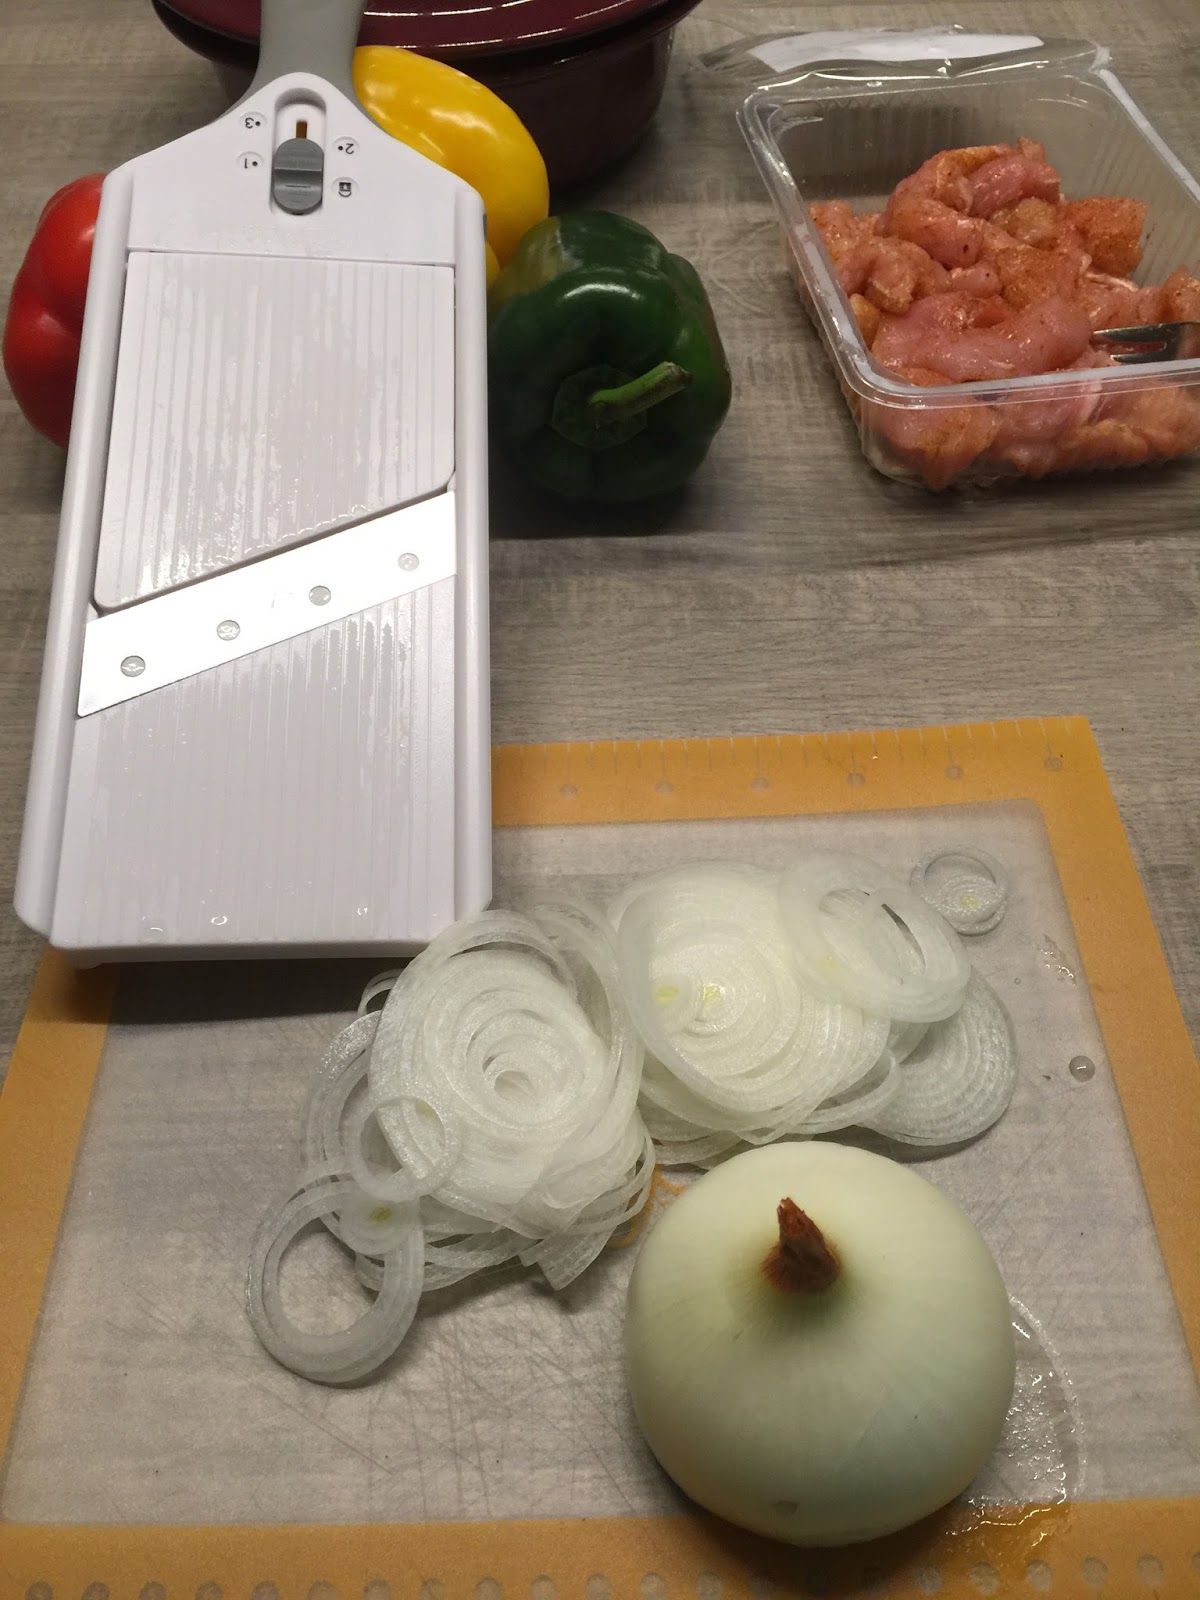 Ofen Küche Pampered Chef Thermomix Und Pampered Chef Runder Zaubermeister